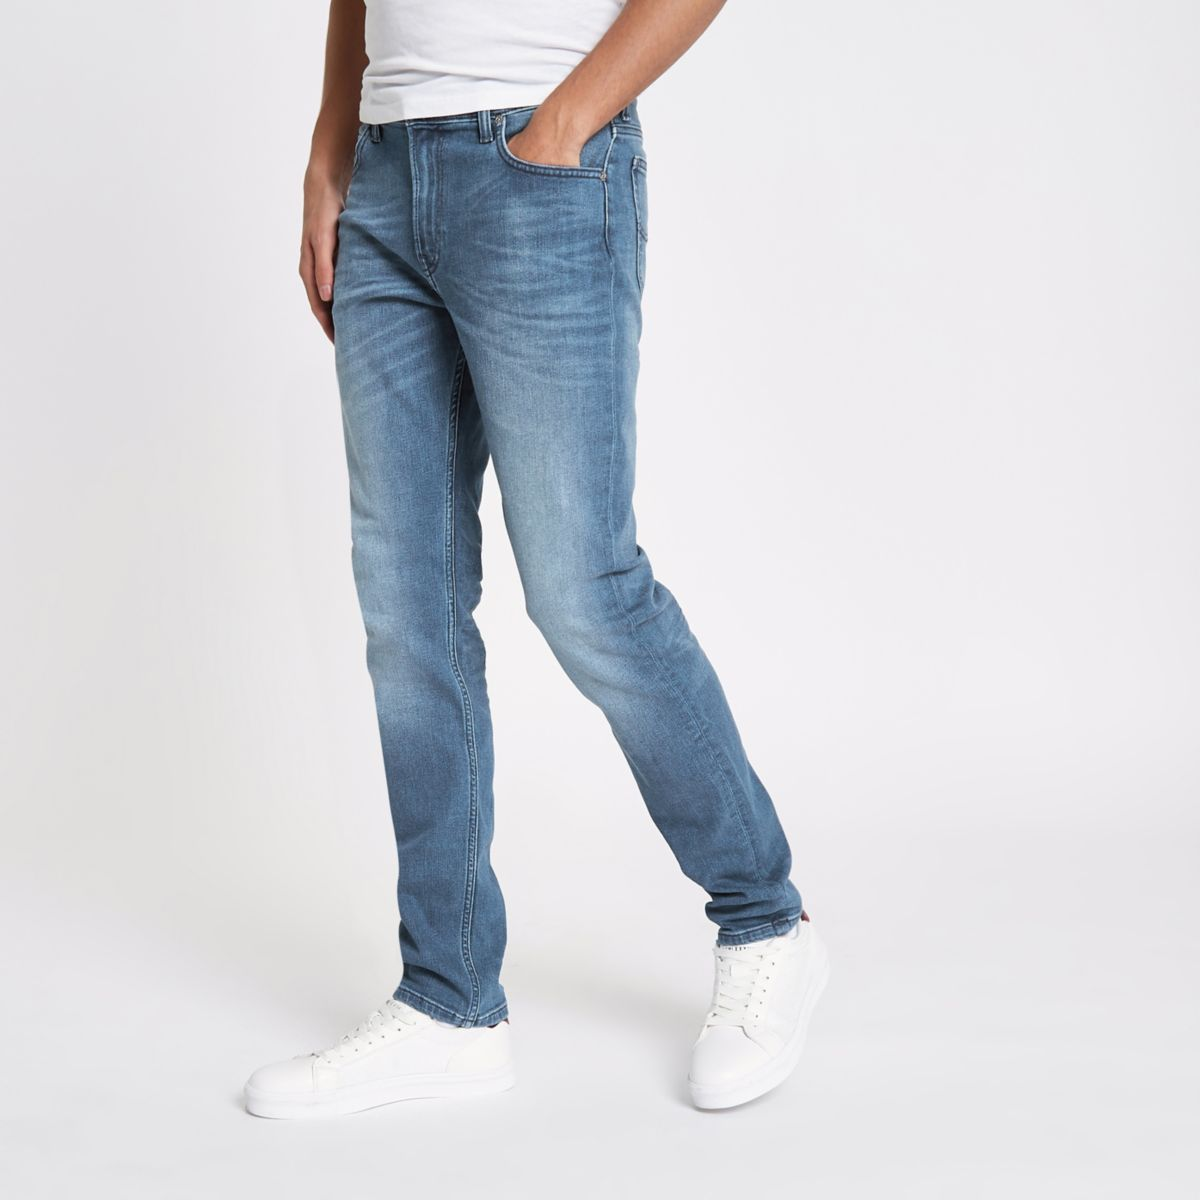 Lee blue Rider slim fit jeans